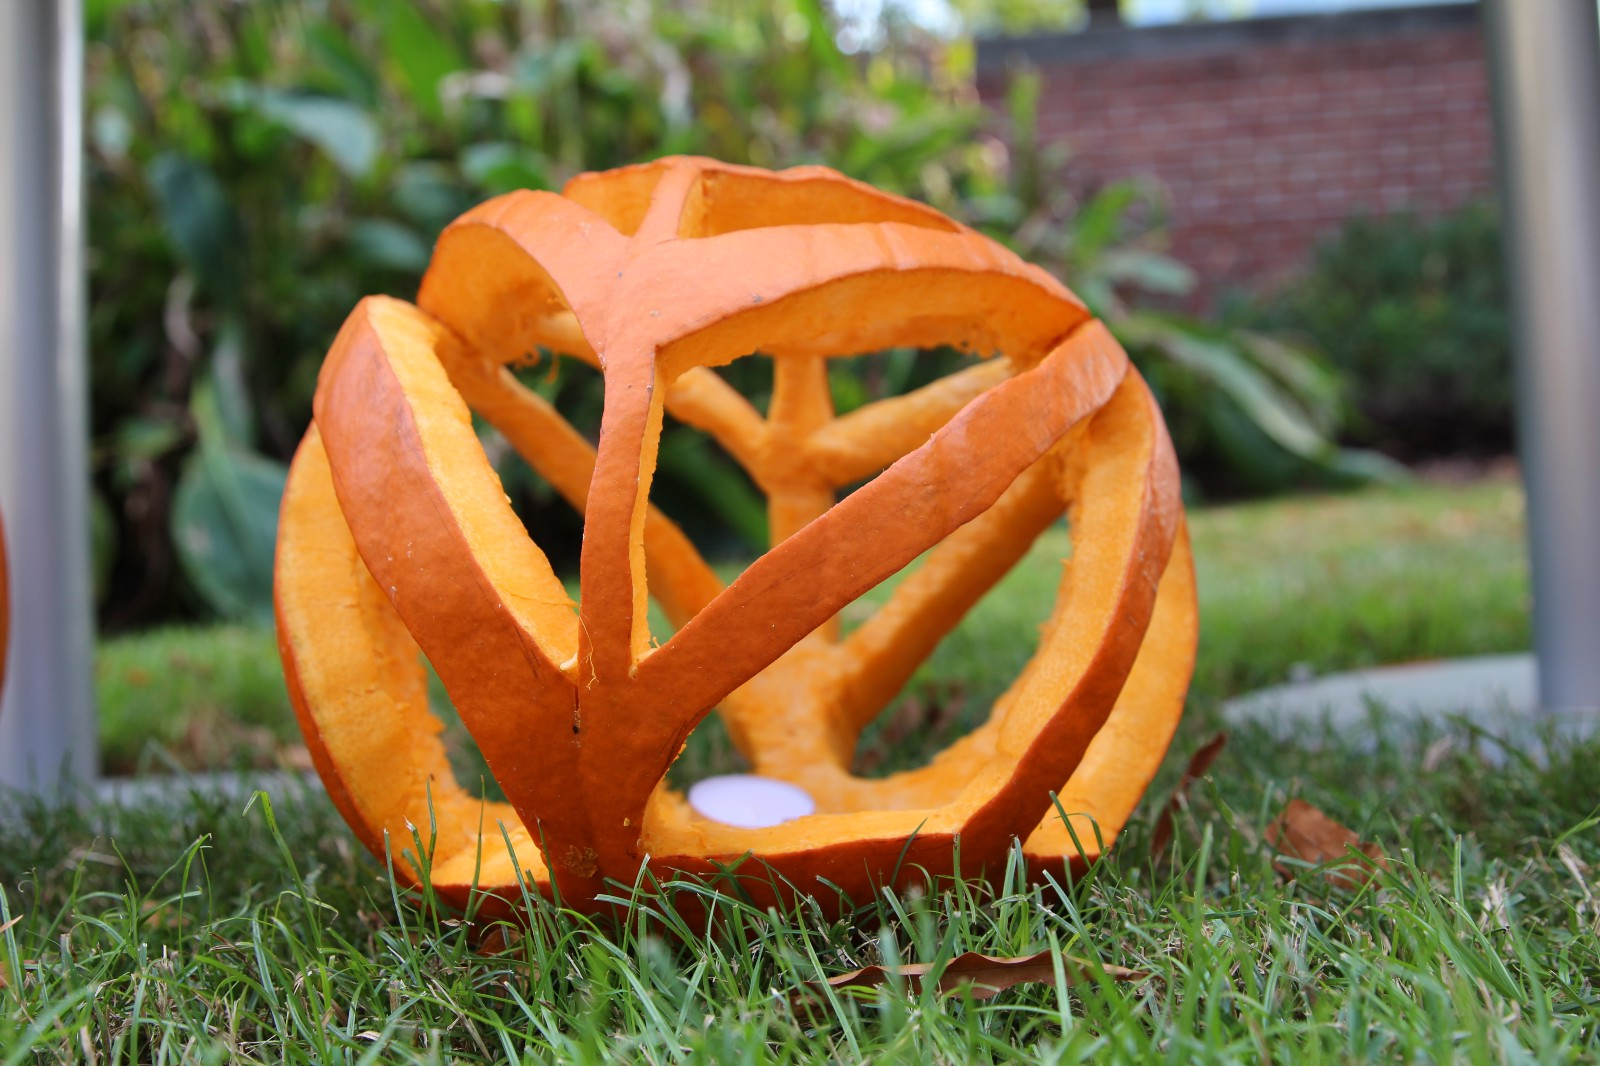 The Idea Was To Create Carved Pumpkins That Housed Tea Light Candles With A Dramatic Transformation Inspired By Some Design Theme